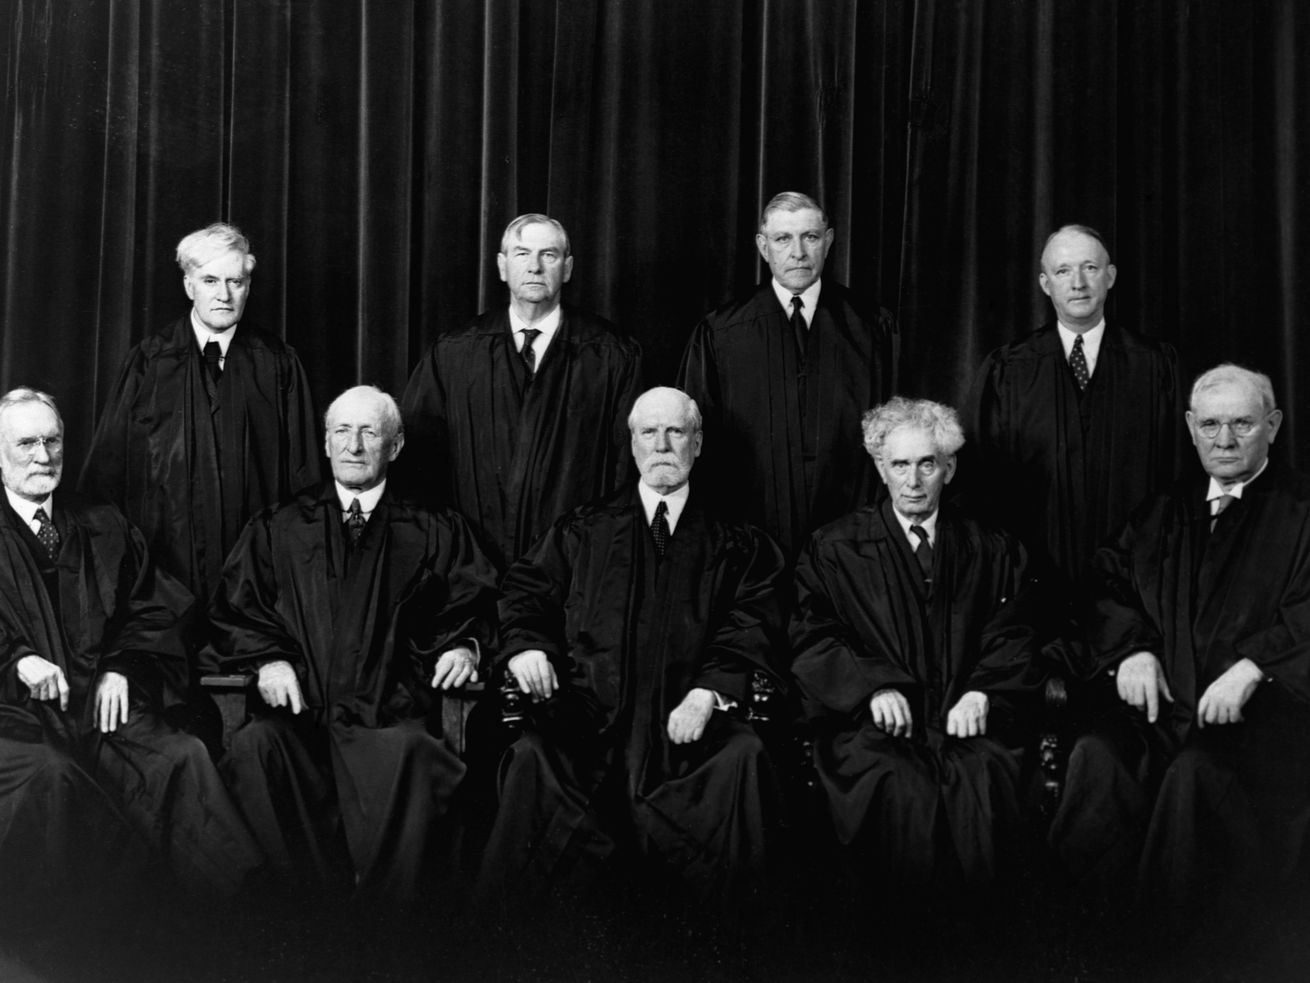 The justices of the Supreme Court for the 1937-38 term. Sitting, from left to right, Justices Sutherland and McReynolds, Chief Justice Hughes, Justices Brandeis and Butler. Standing, left to right, Justices Cardozo, Stone, Roberts, and Black.